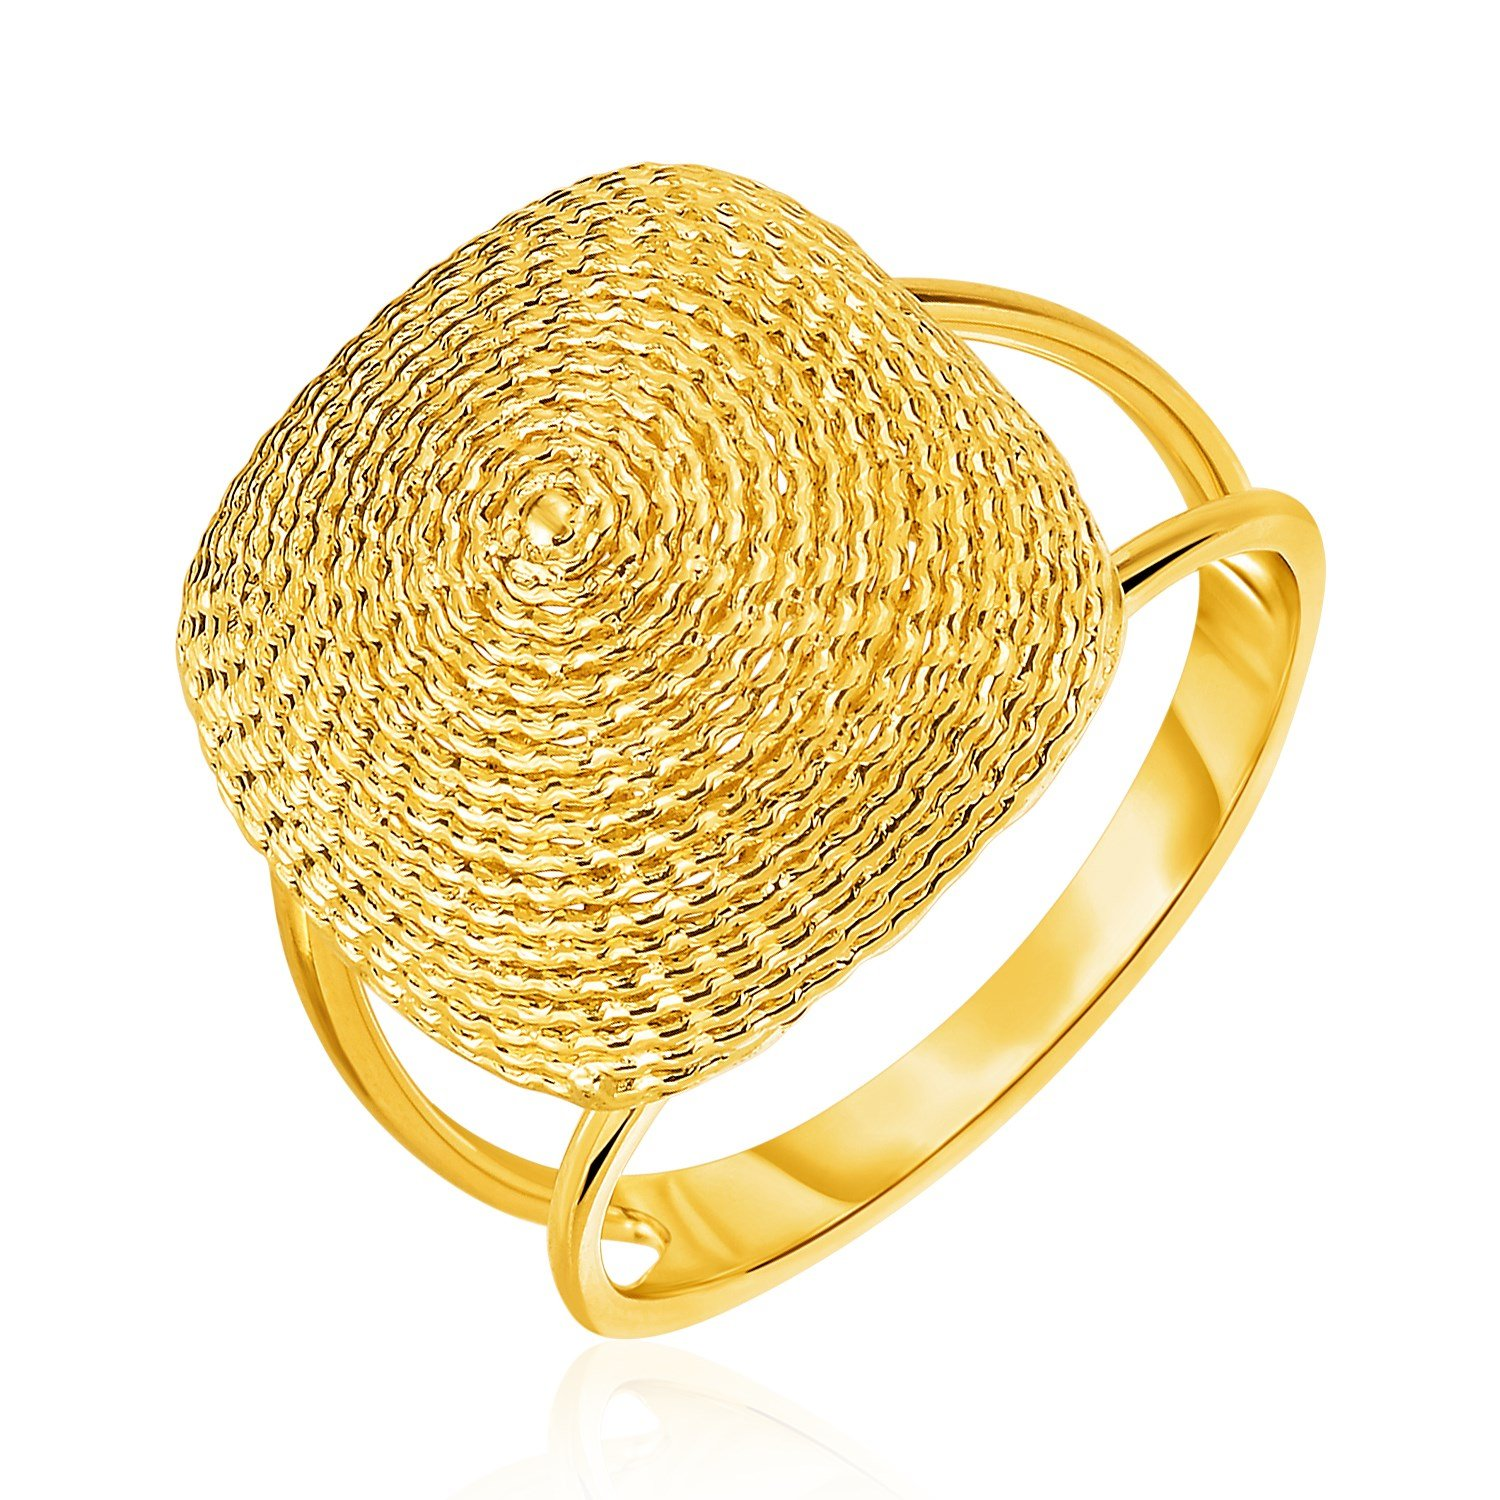 14K Yellow Gold Ring with Textured Semi-Square Dome Top by Diamond Designs (Image #1)